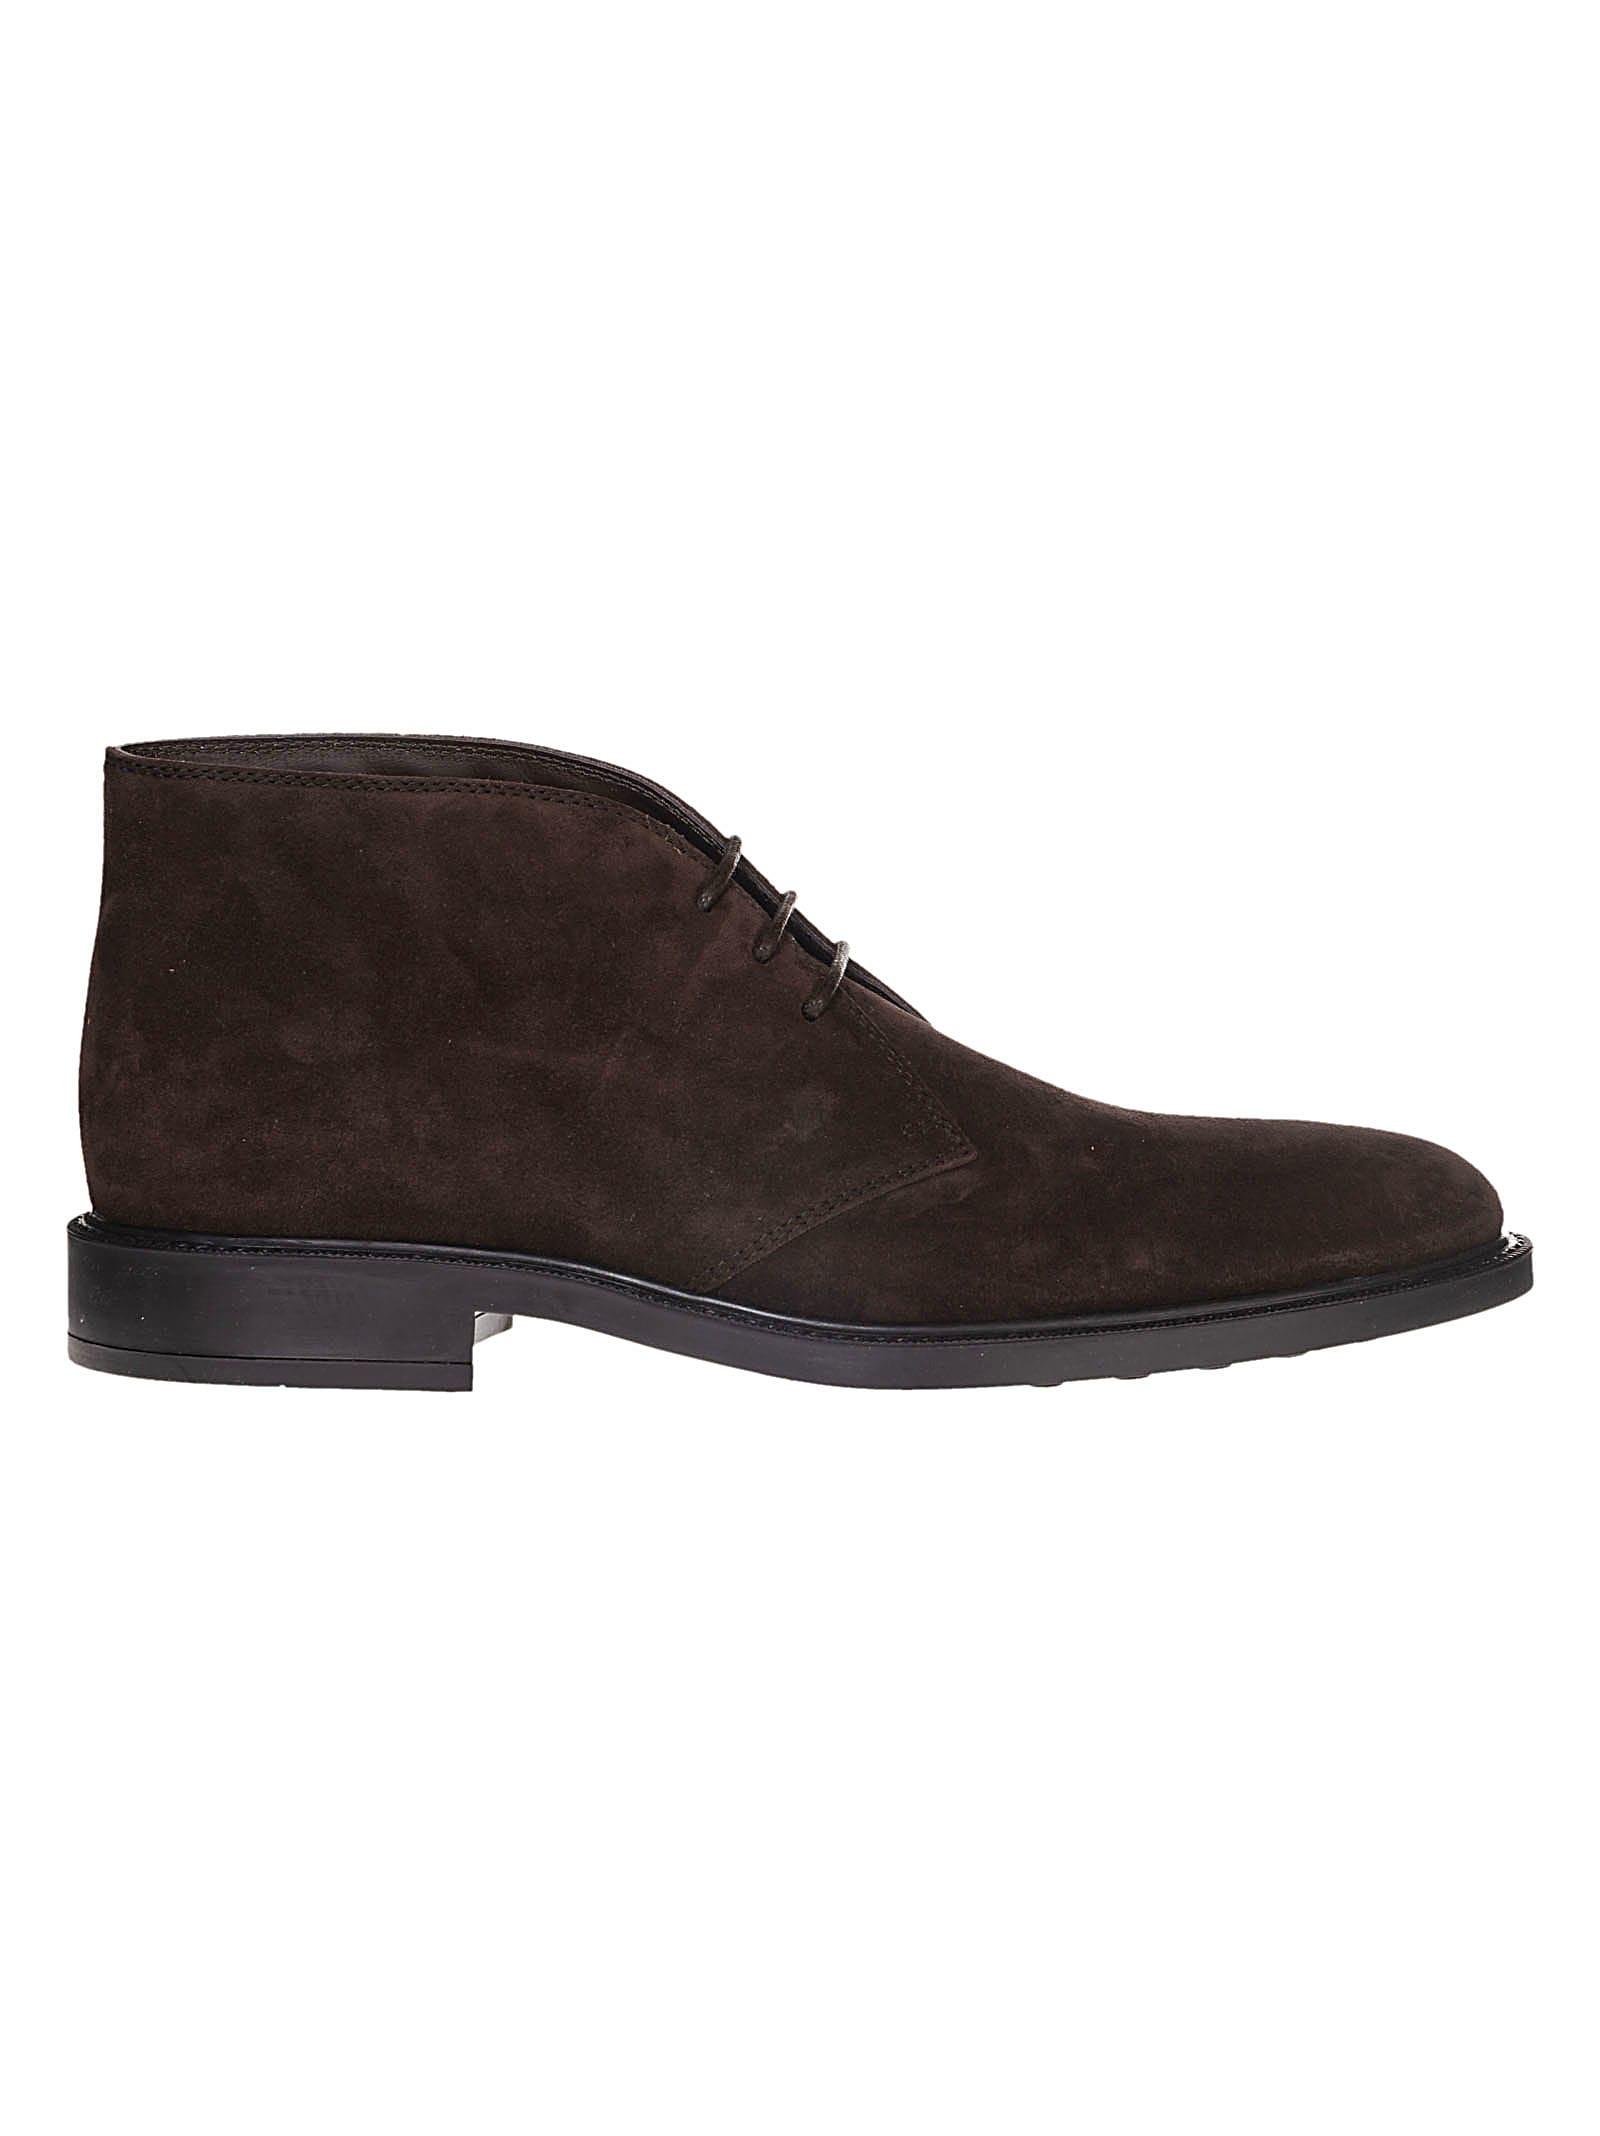 Tods Lace-up Boots